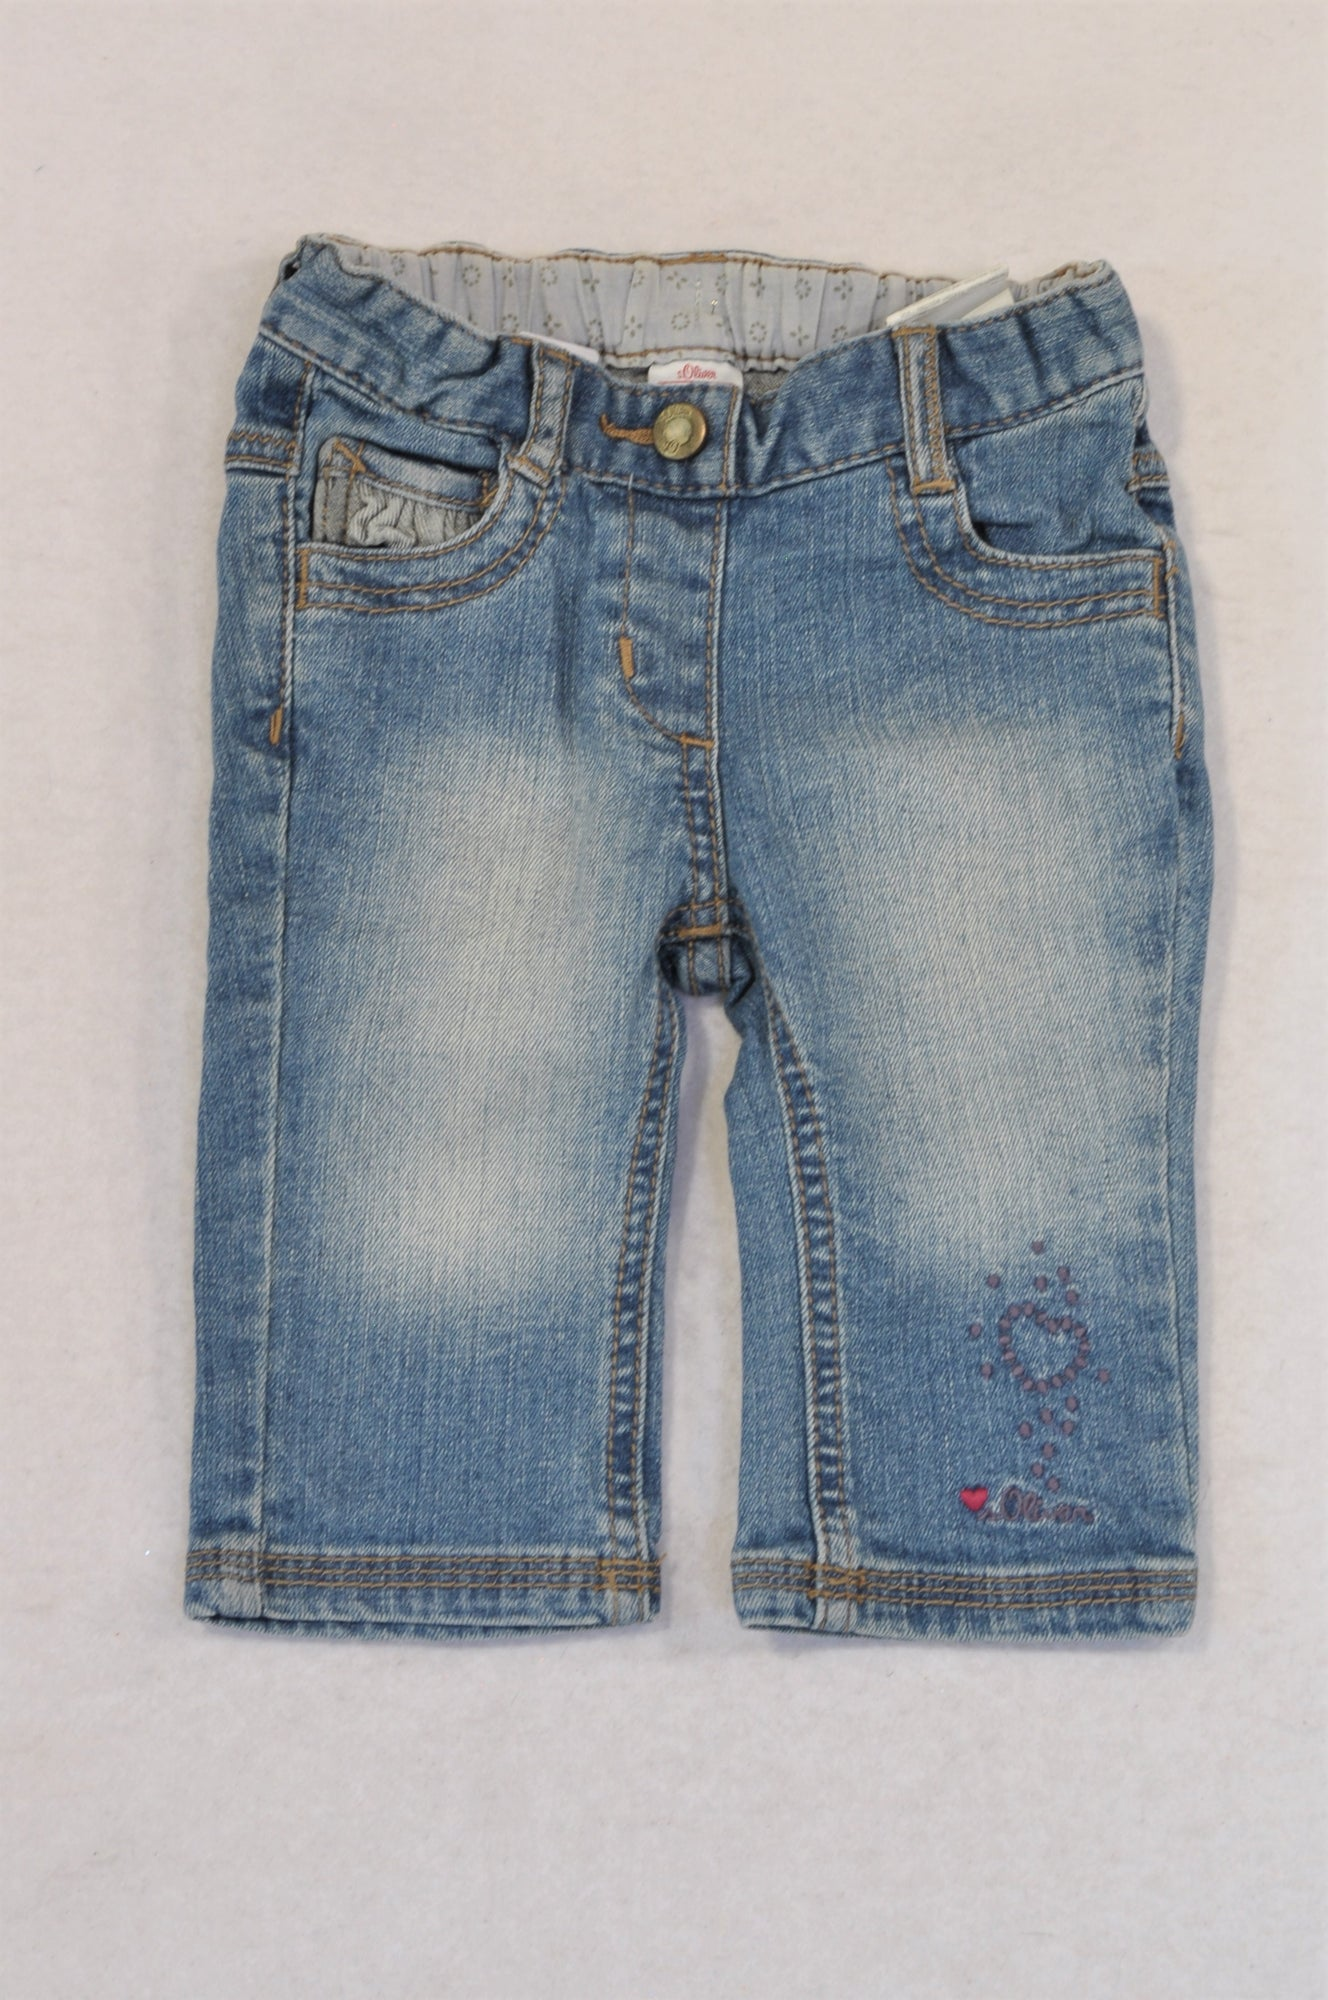 S.Oliver Stone Washed Pocket Detail 3/4 Jeans Girls 3-6 months